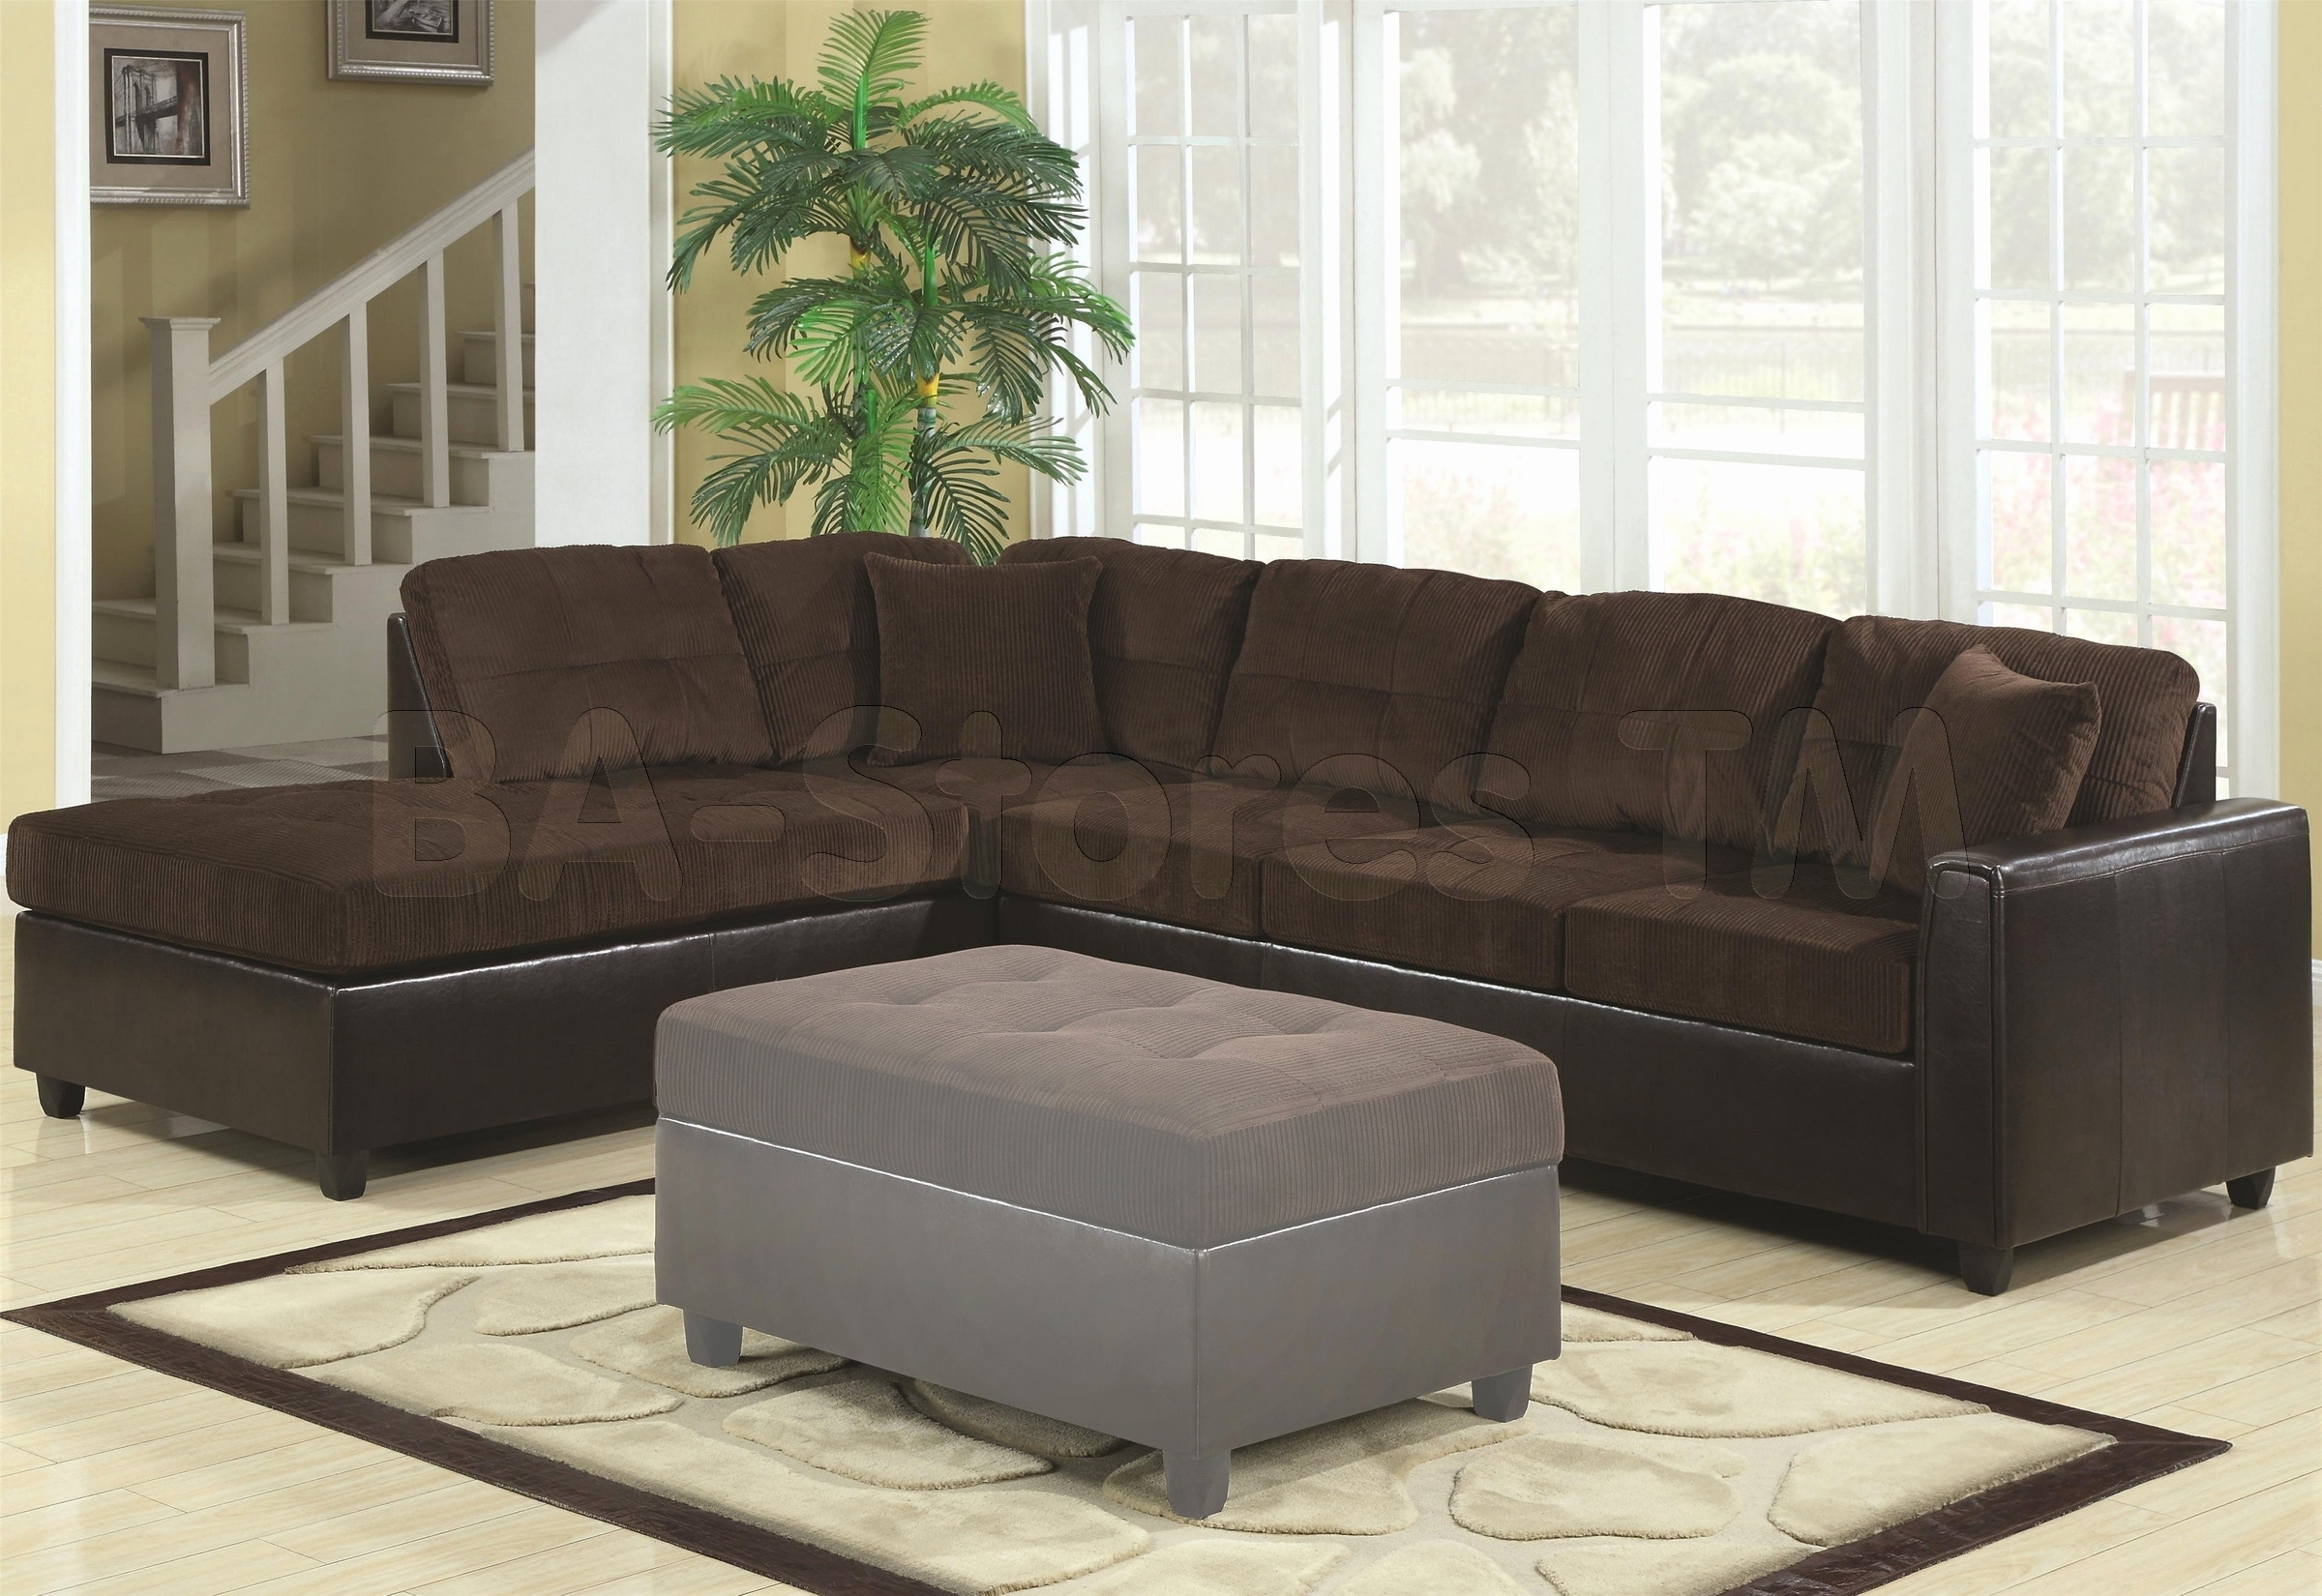 Fresh Sectional Sofa Beds For Small Spaces 2018 – Couches And Sofas For Sectional Sofas At Ebay (Image 1 of 10)